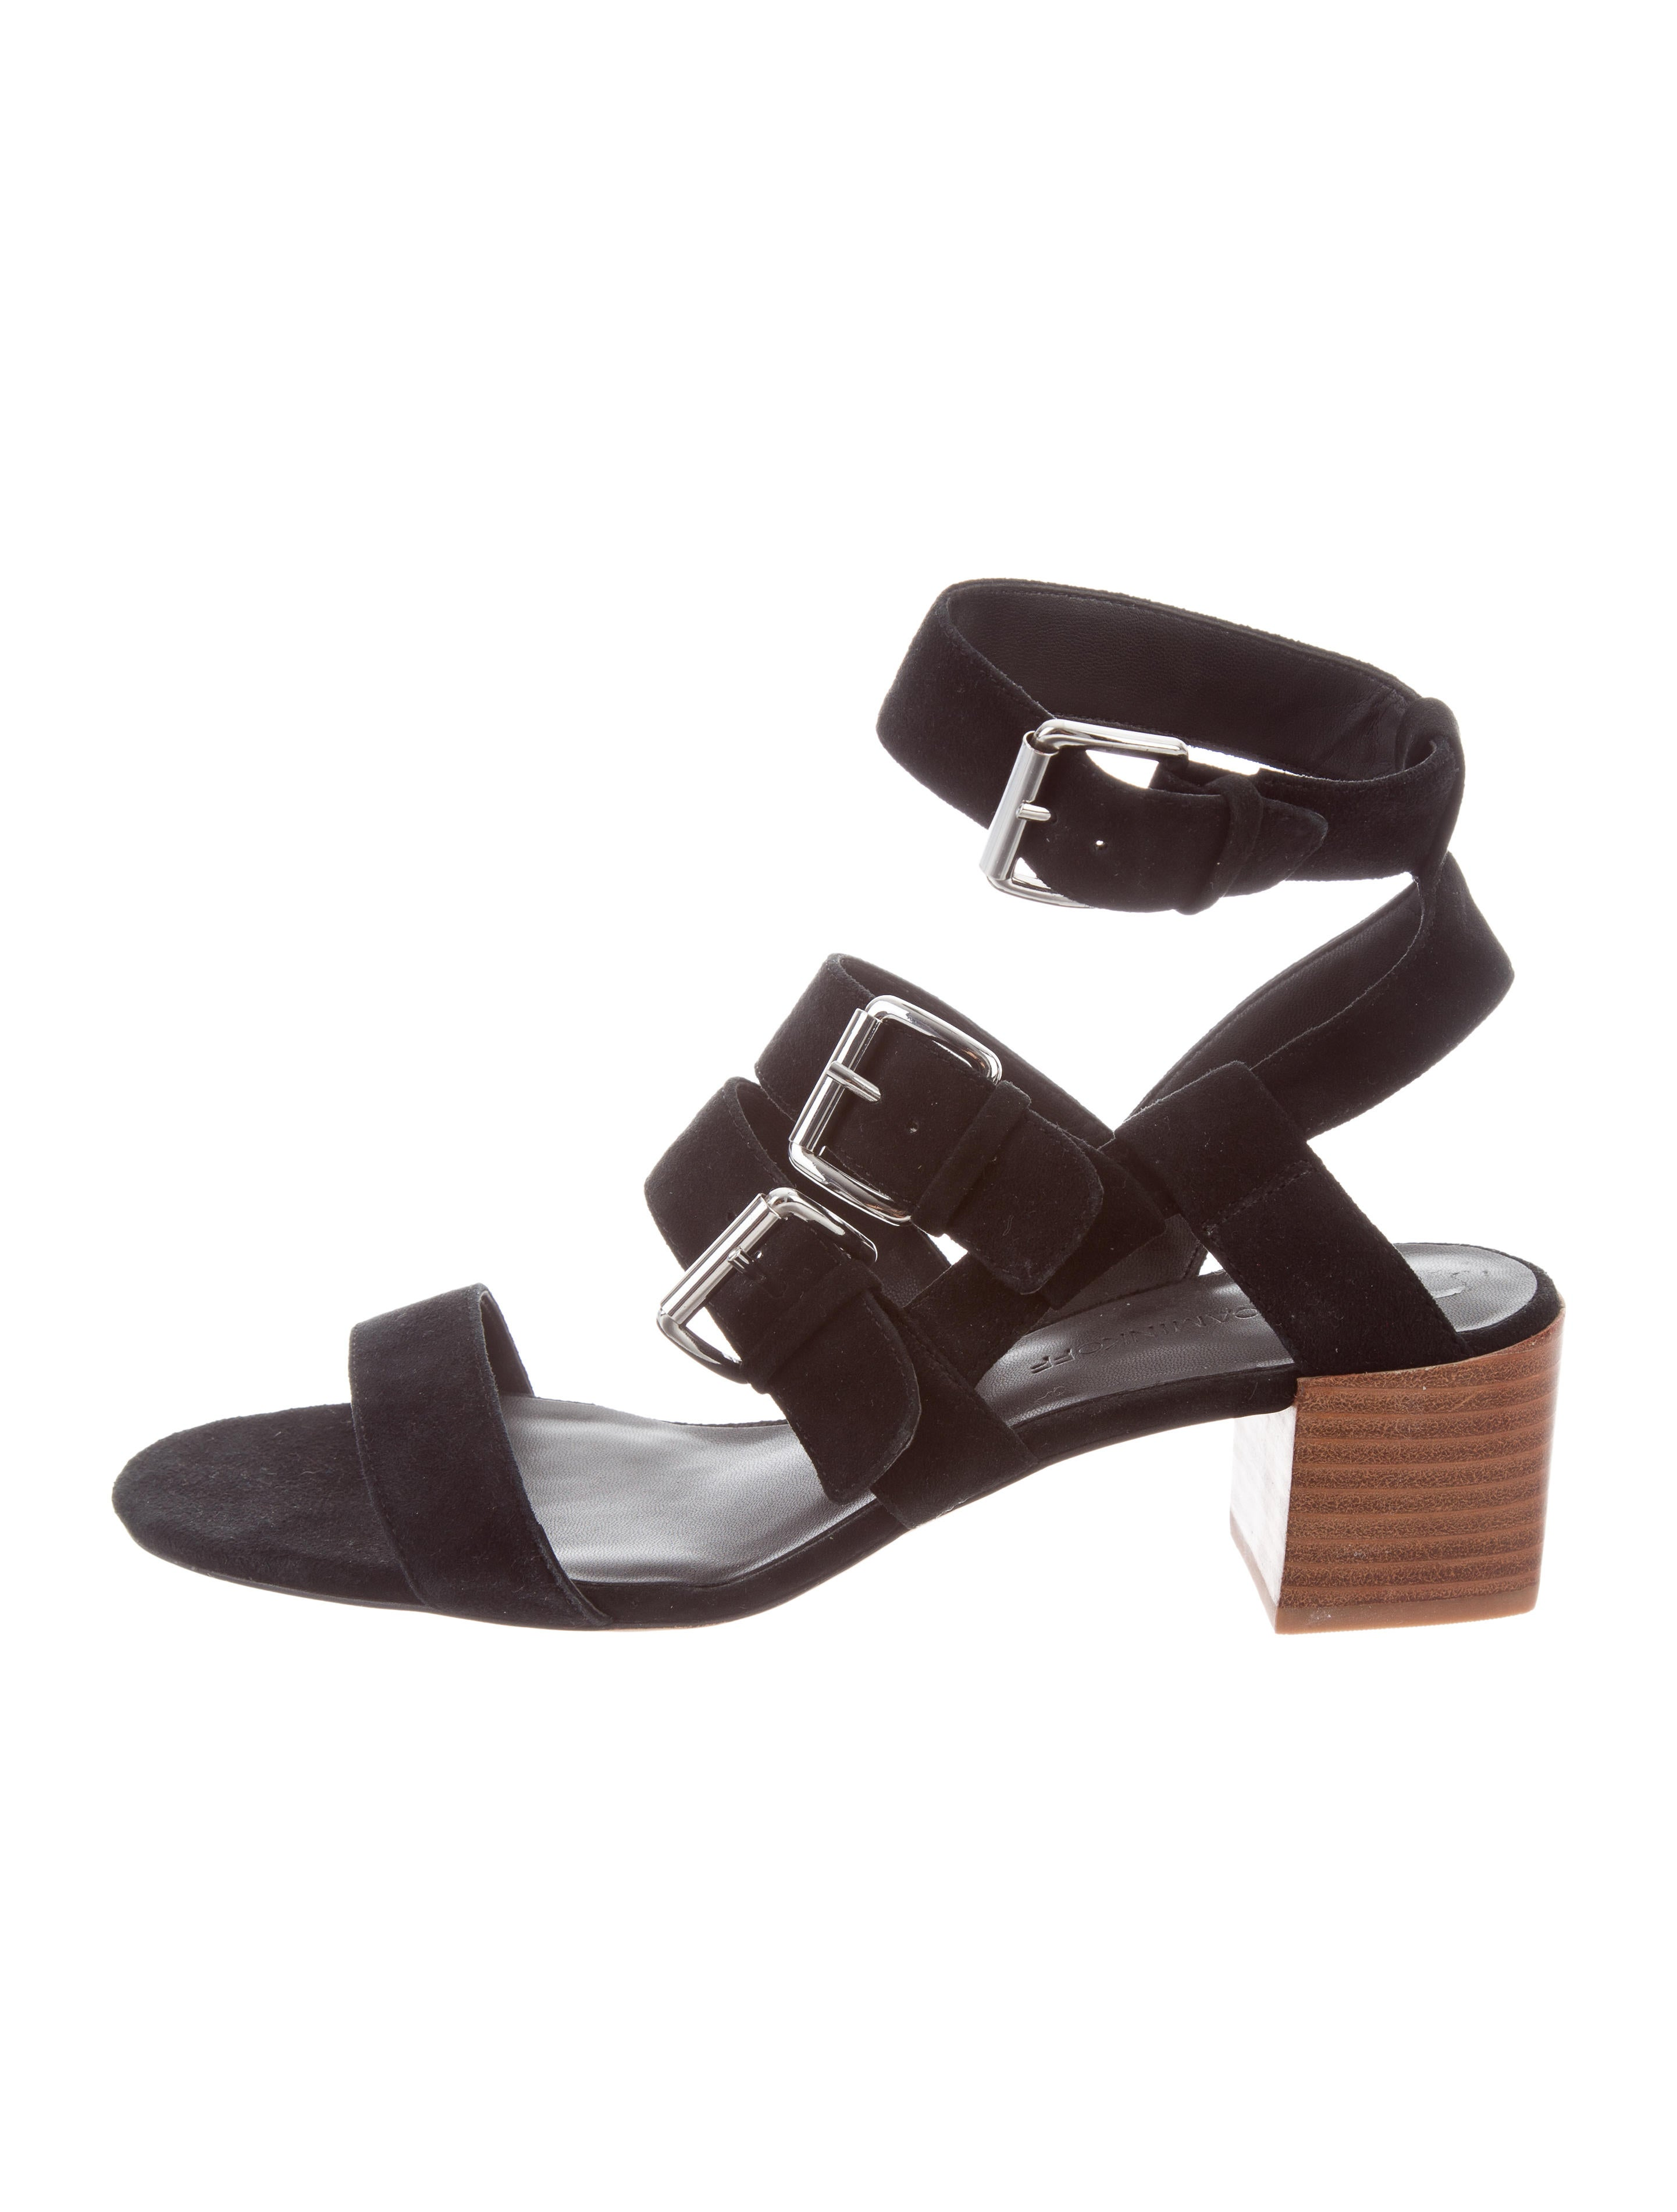 Rebecca Minkoff Suede Buckle Sandals shop for cheap price store online discount pick a best pictures for sale free shipping how much KGI6i8vqPs